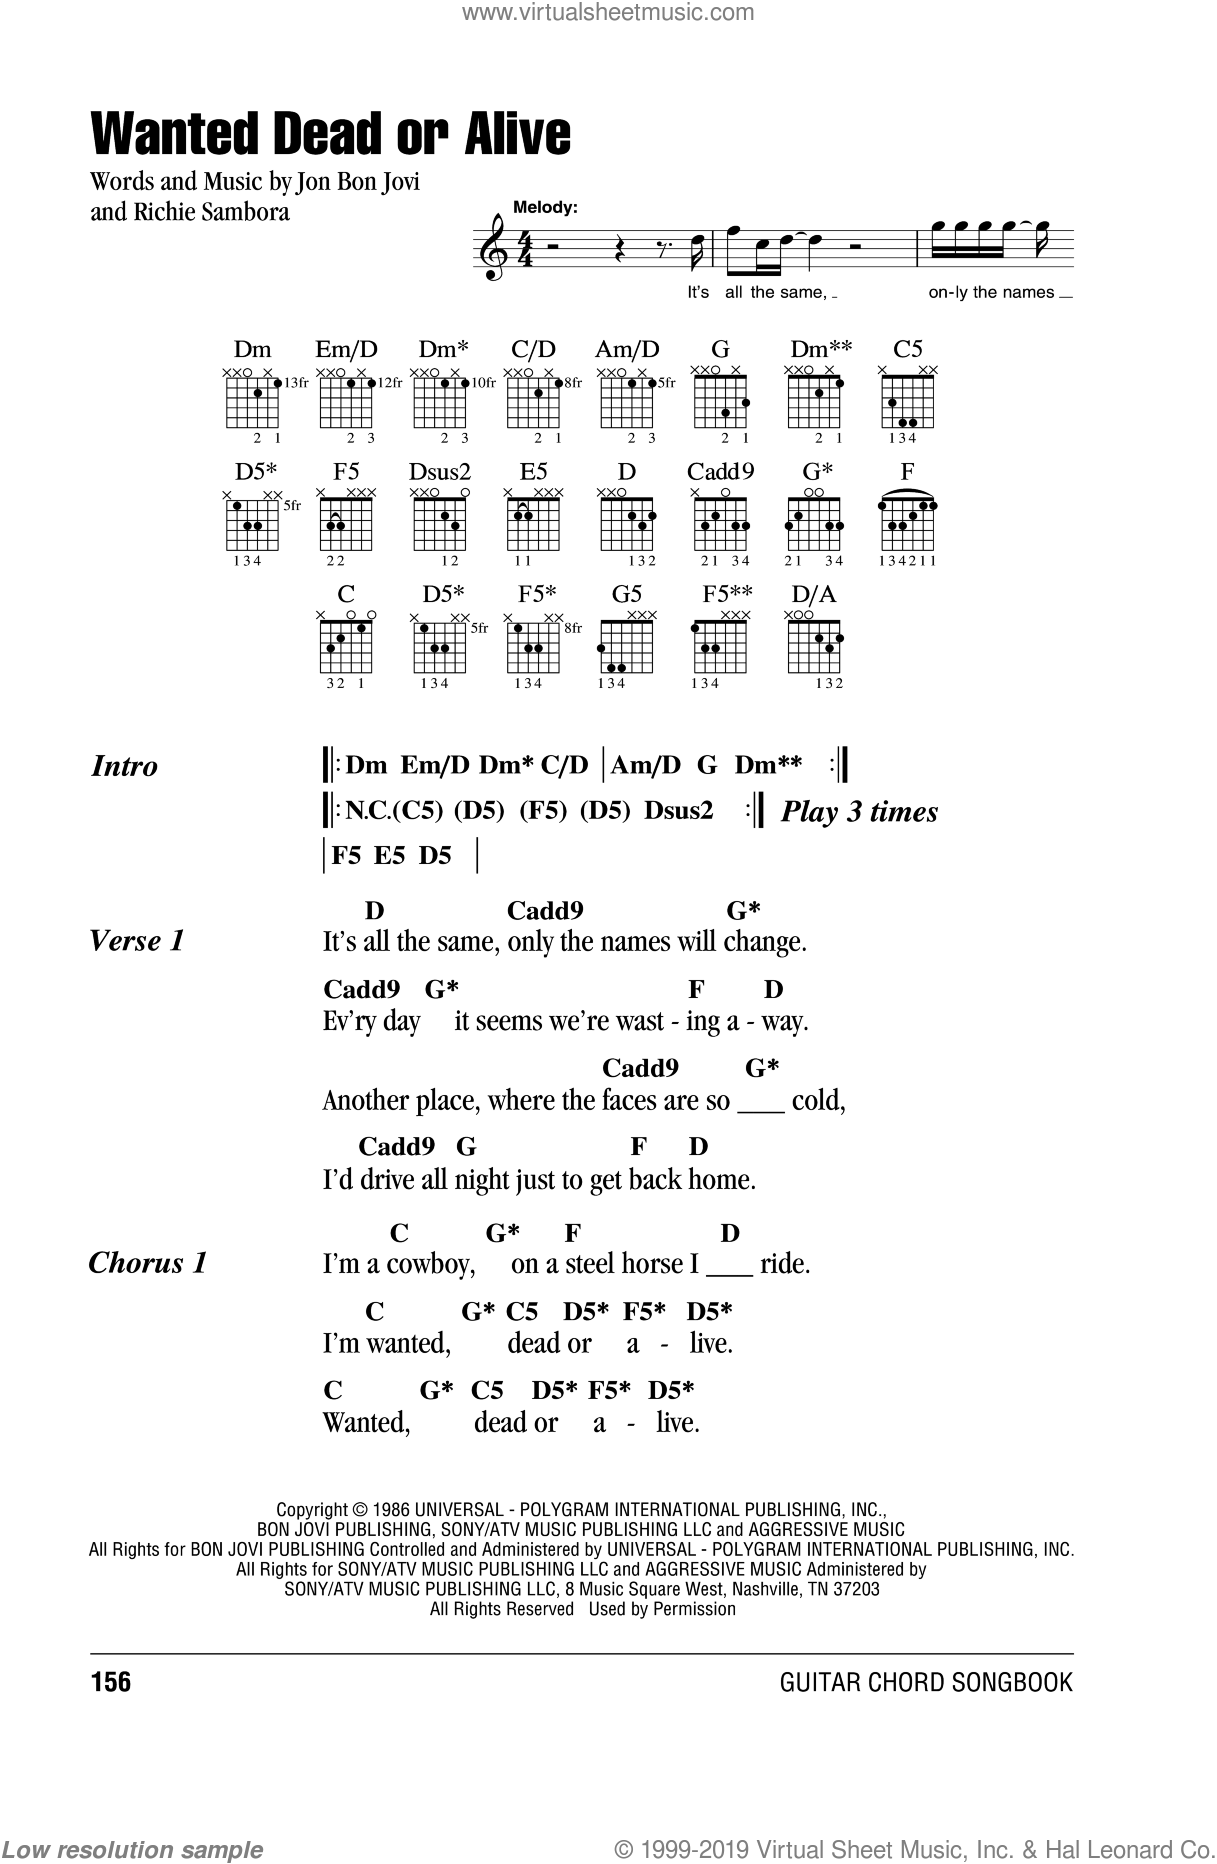 Jovi Wanted Dead Or Alive Sheet Music For Guitar Chords Pdf